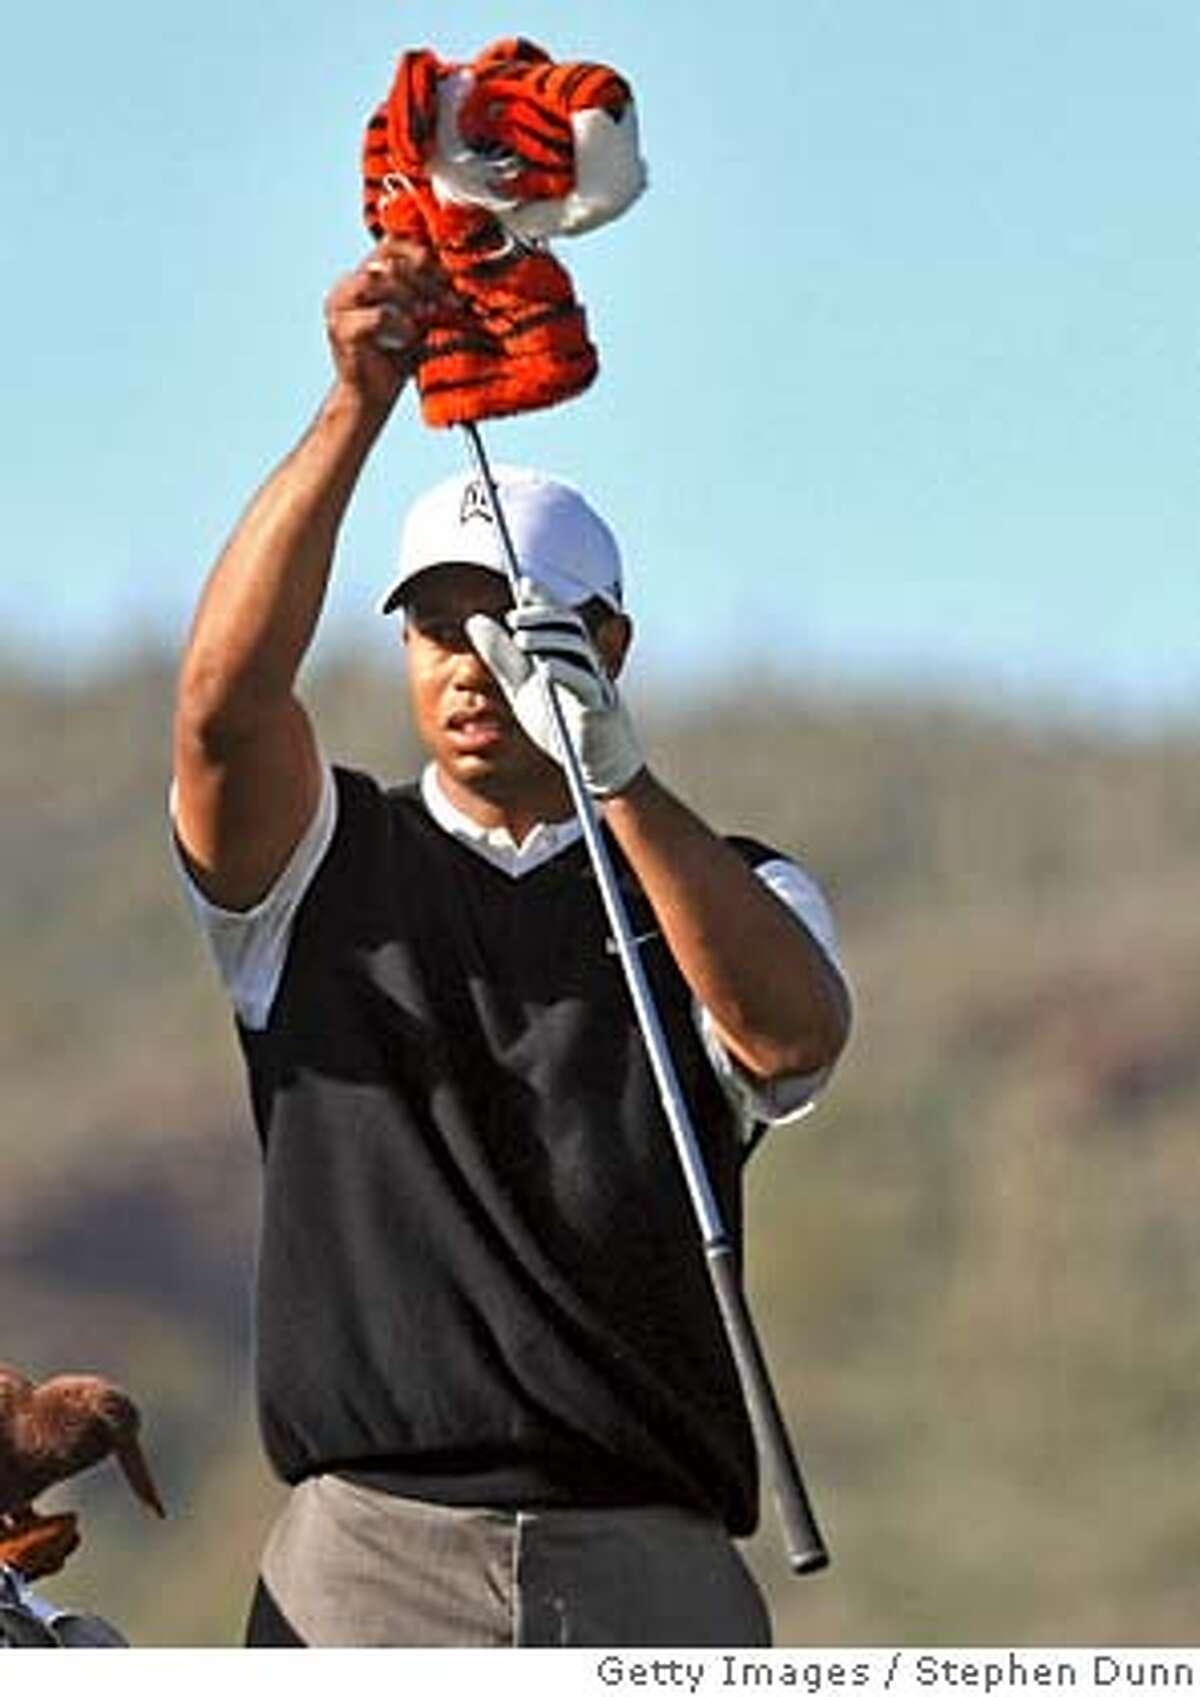 MARANA, AZ - FEBRUARY 20: Tiger Woods hits takes the cover off of his driver on the 17th hole during the first round matches of the WGC-Accenture Match Play Championship at The Gallery at Dove Mountain on February 20, 2008 in Marana, Arizona. (Photo by Stephen Dunn/Getty Images)